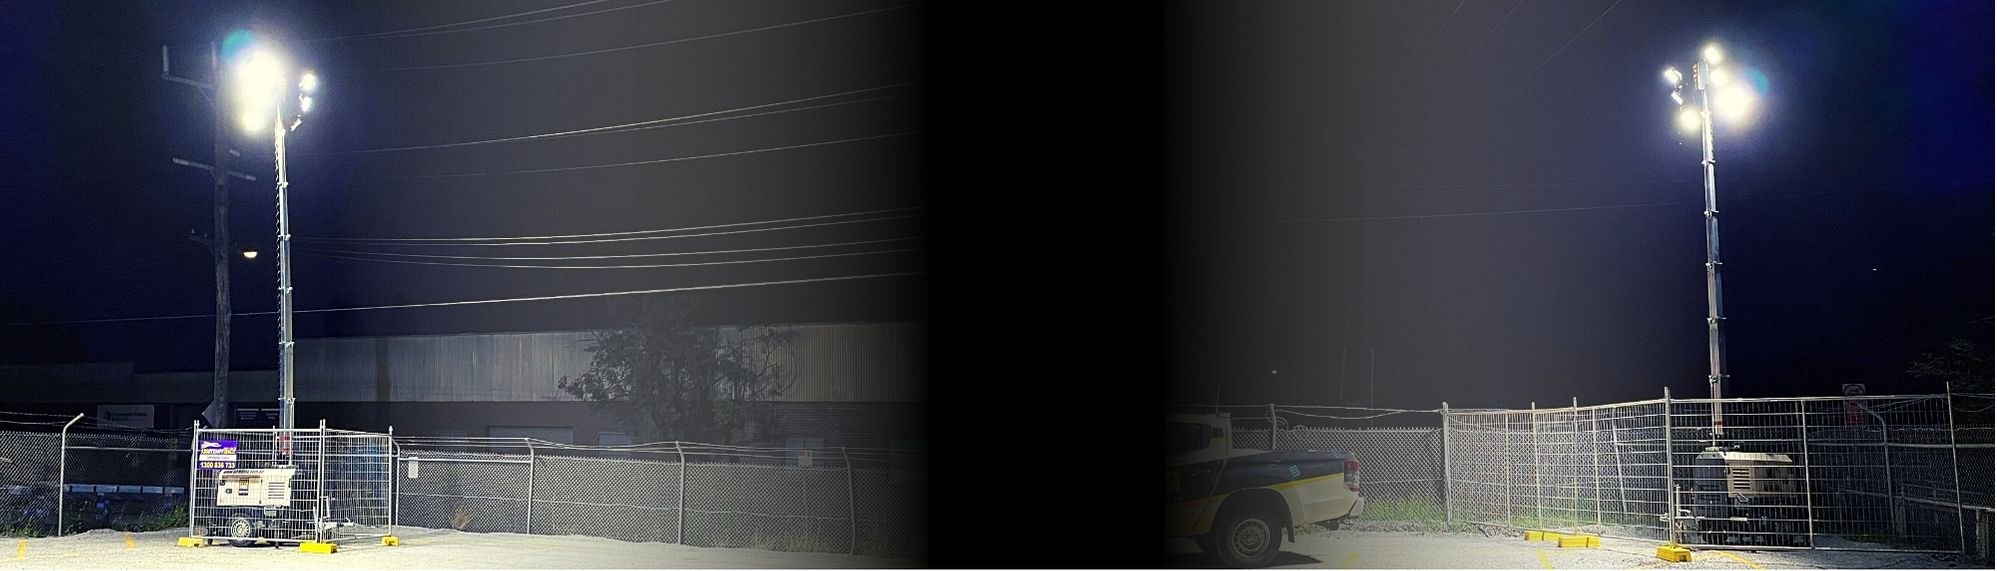 Portable Light Towers - RPM Hire